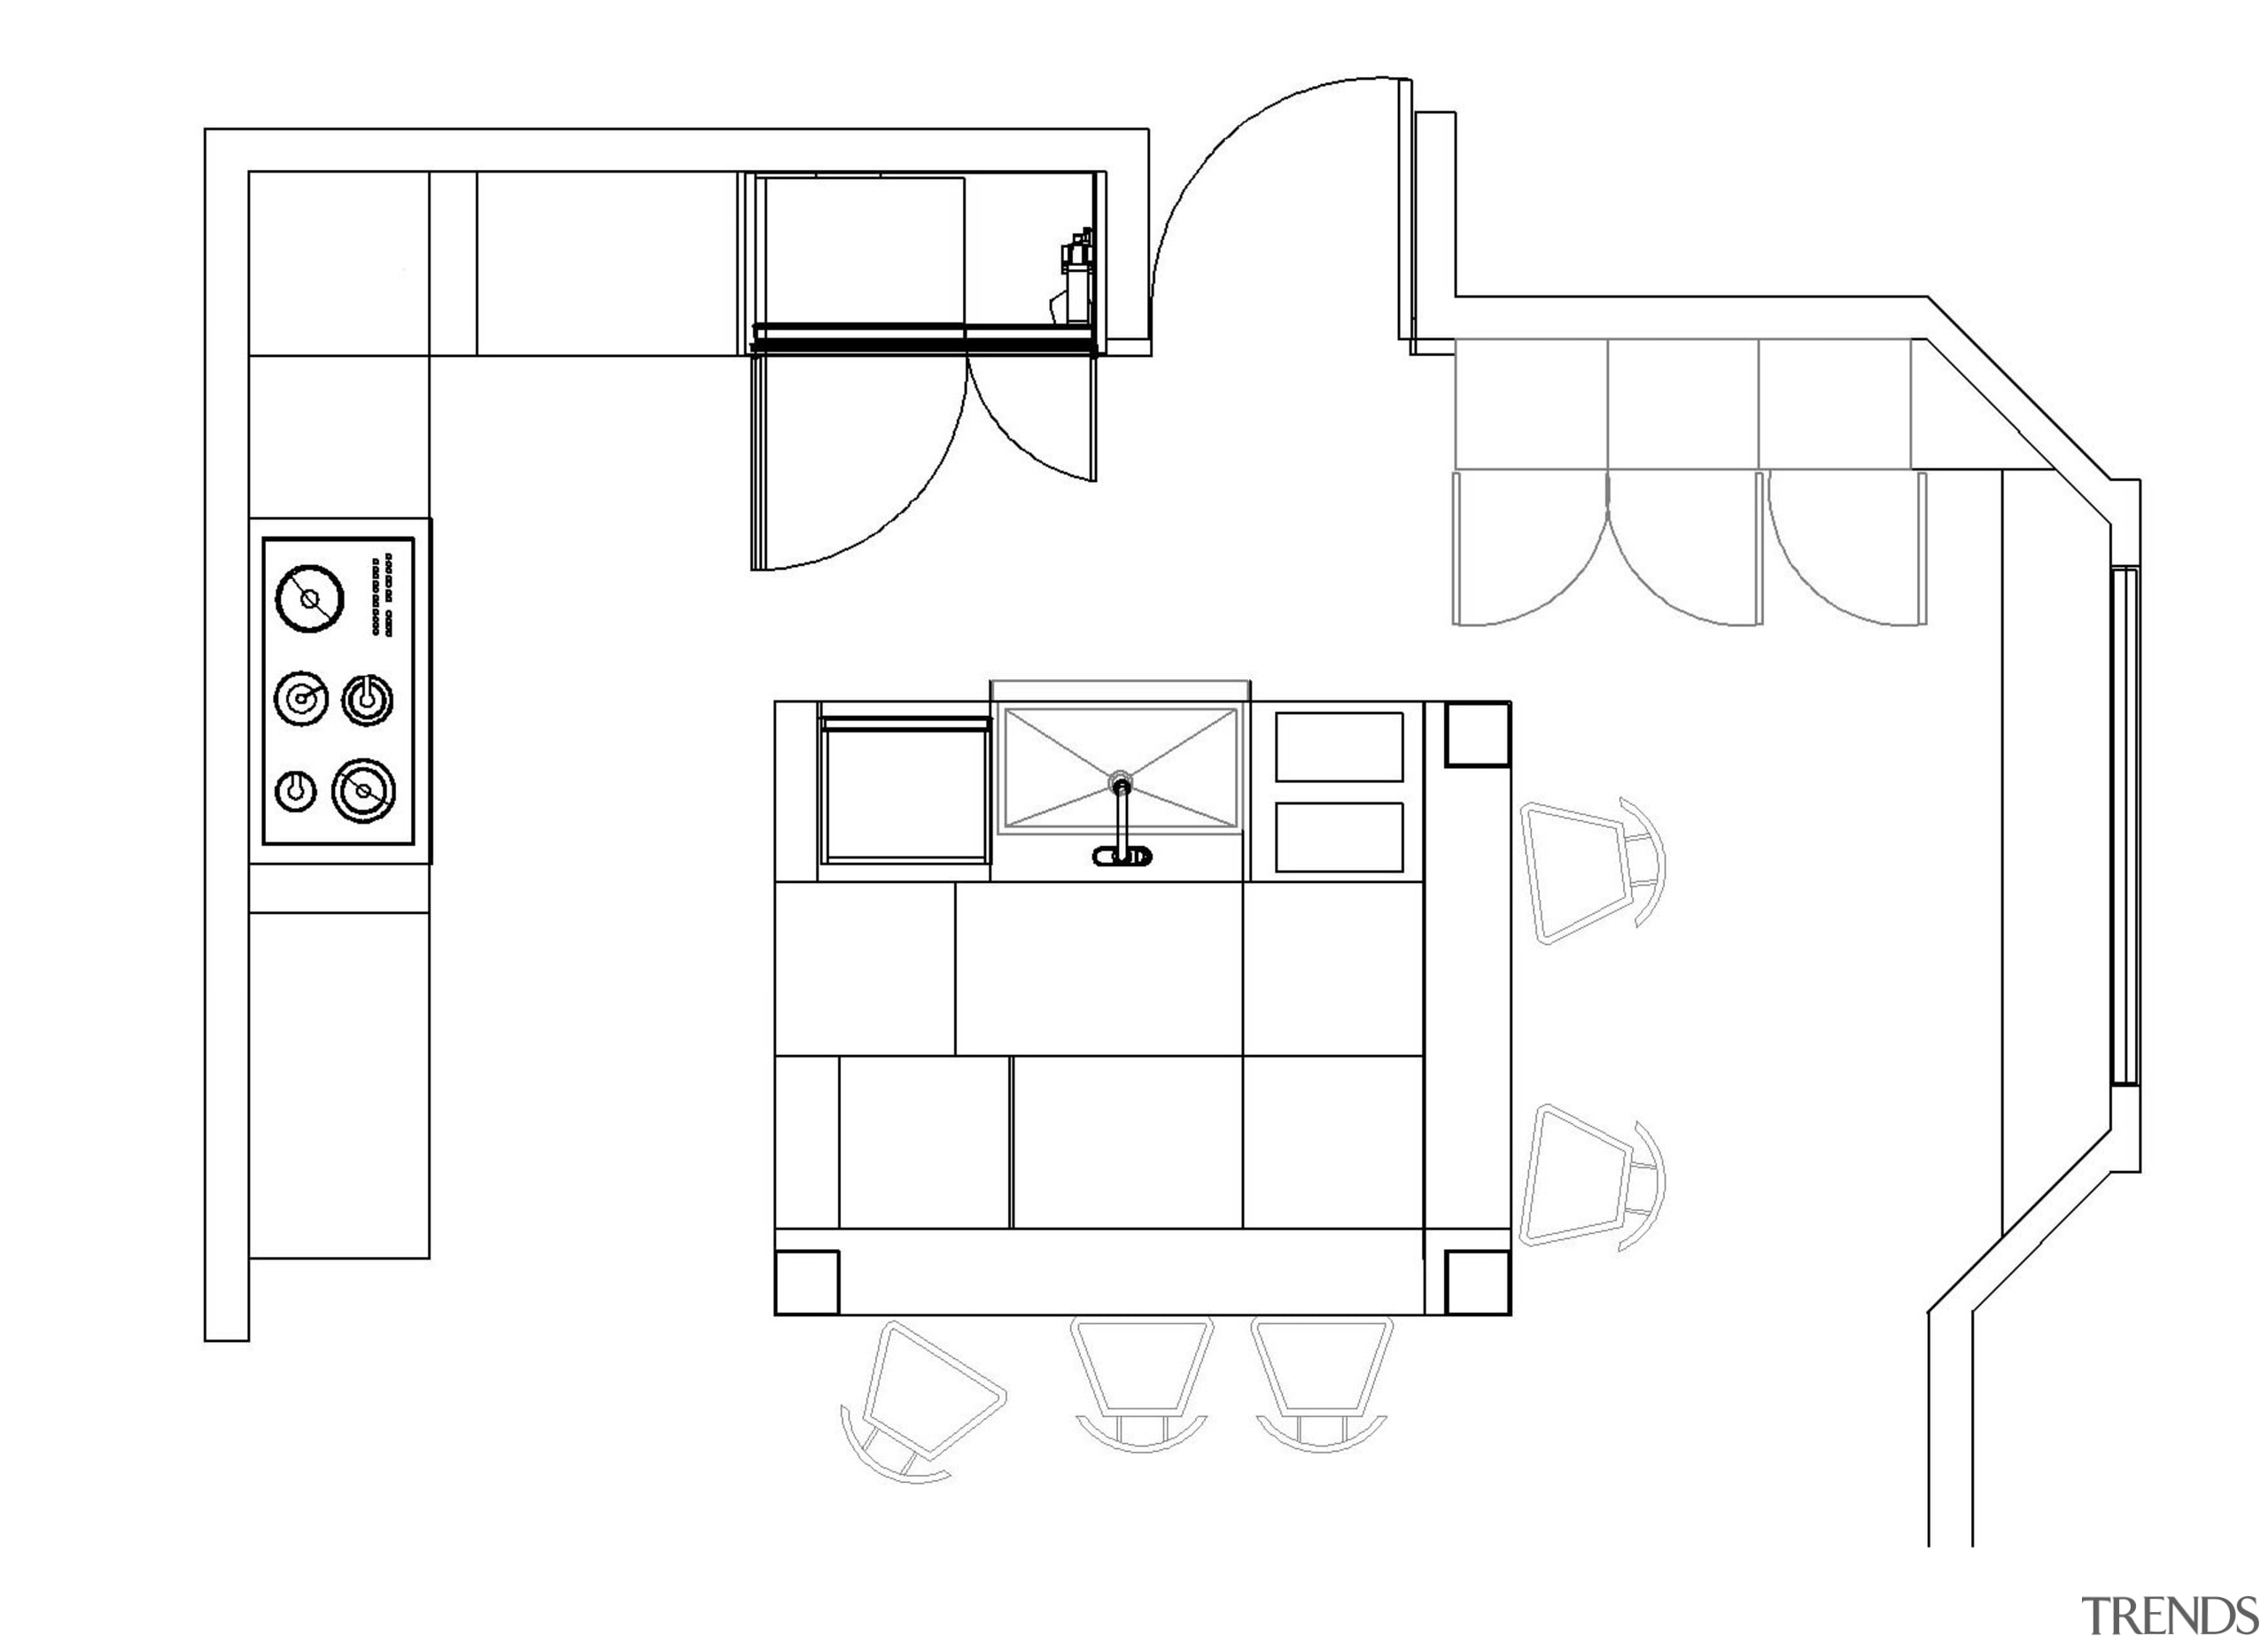 Plan of kitchen with square island - Plan angle, area, black and white, design, diagram, drawing, floor plan, font, furniture, line, line art, product, product design, structure, technical drawing, white